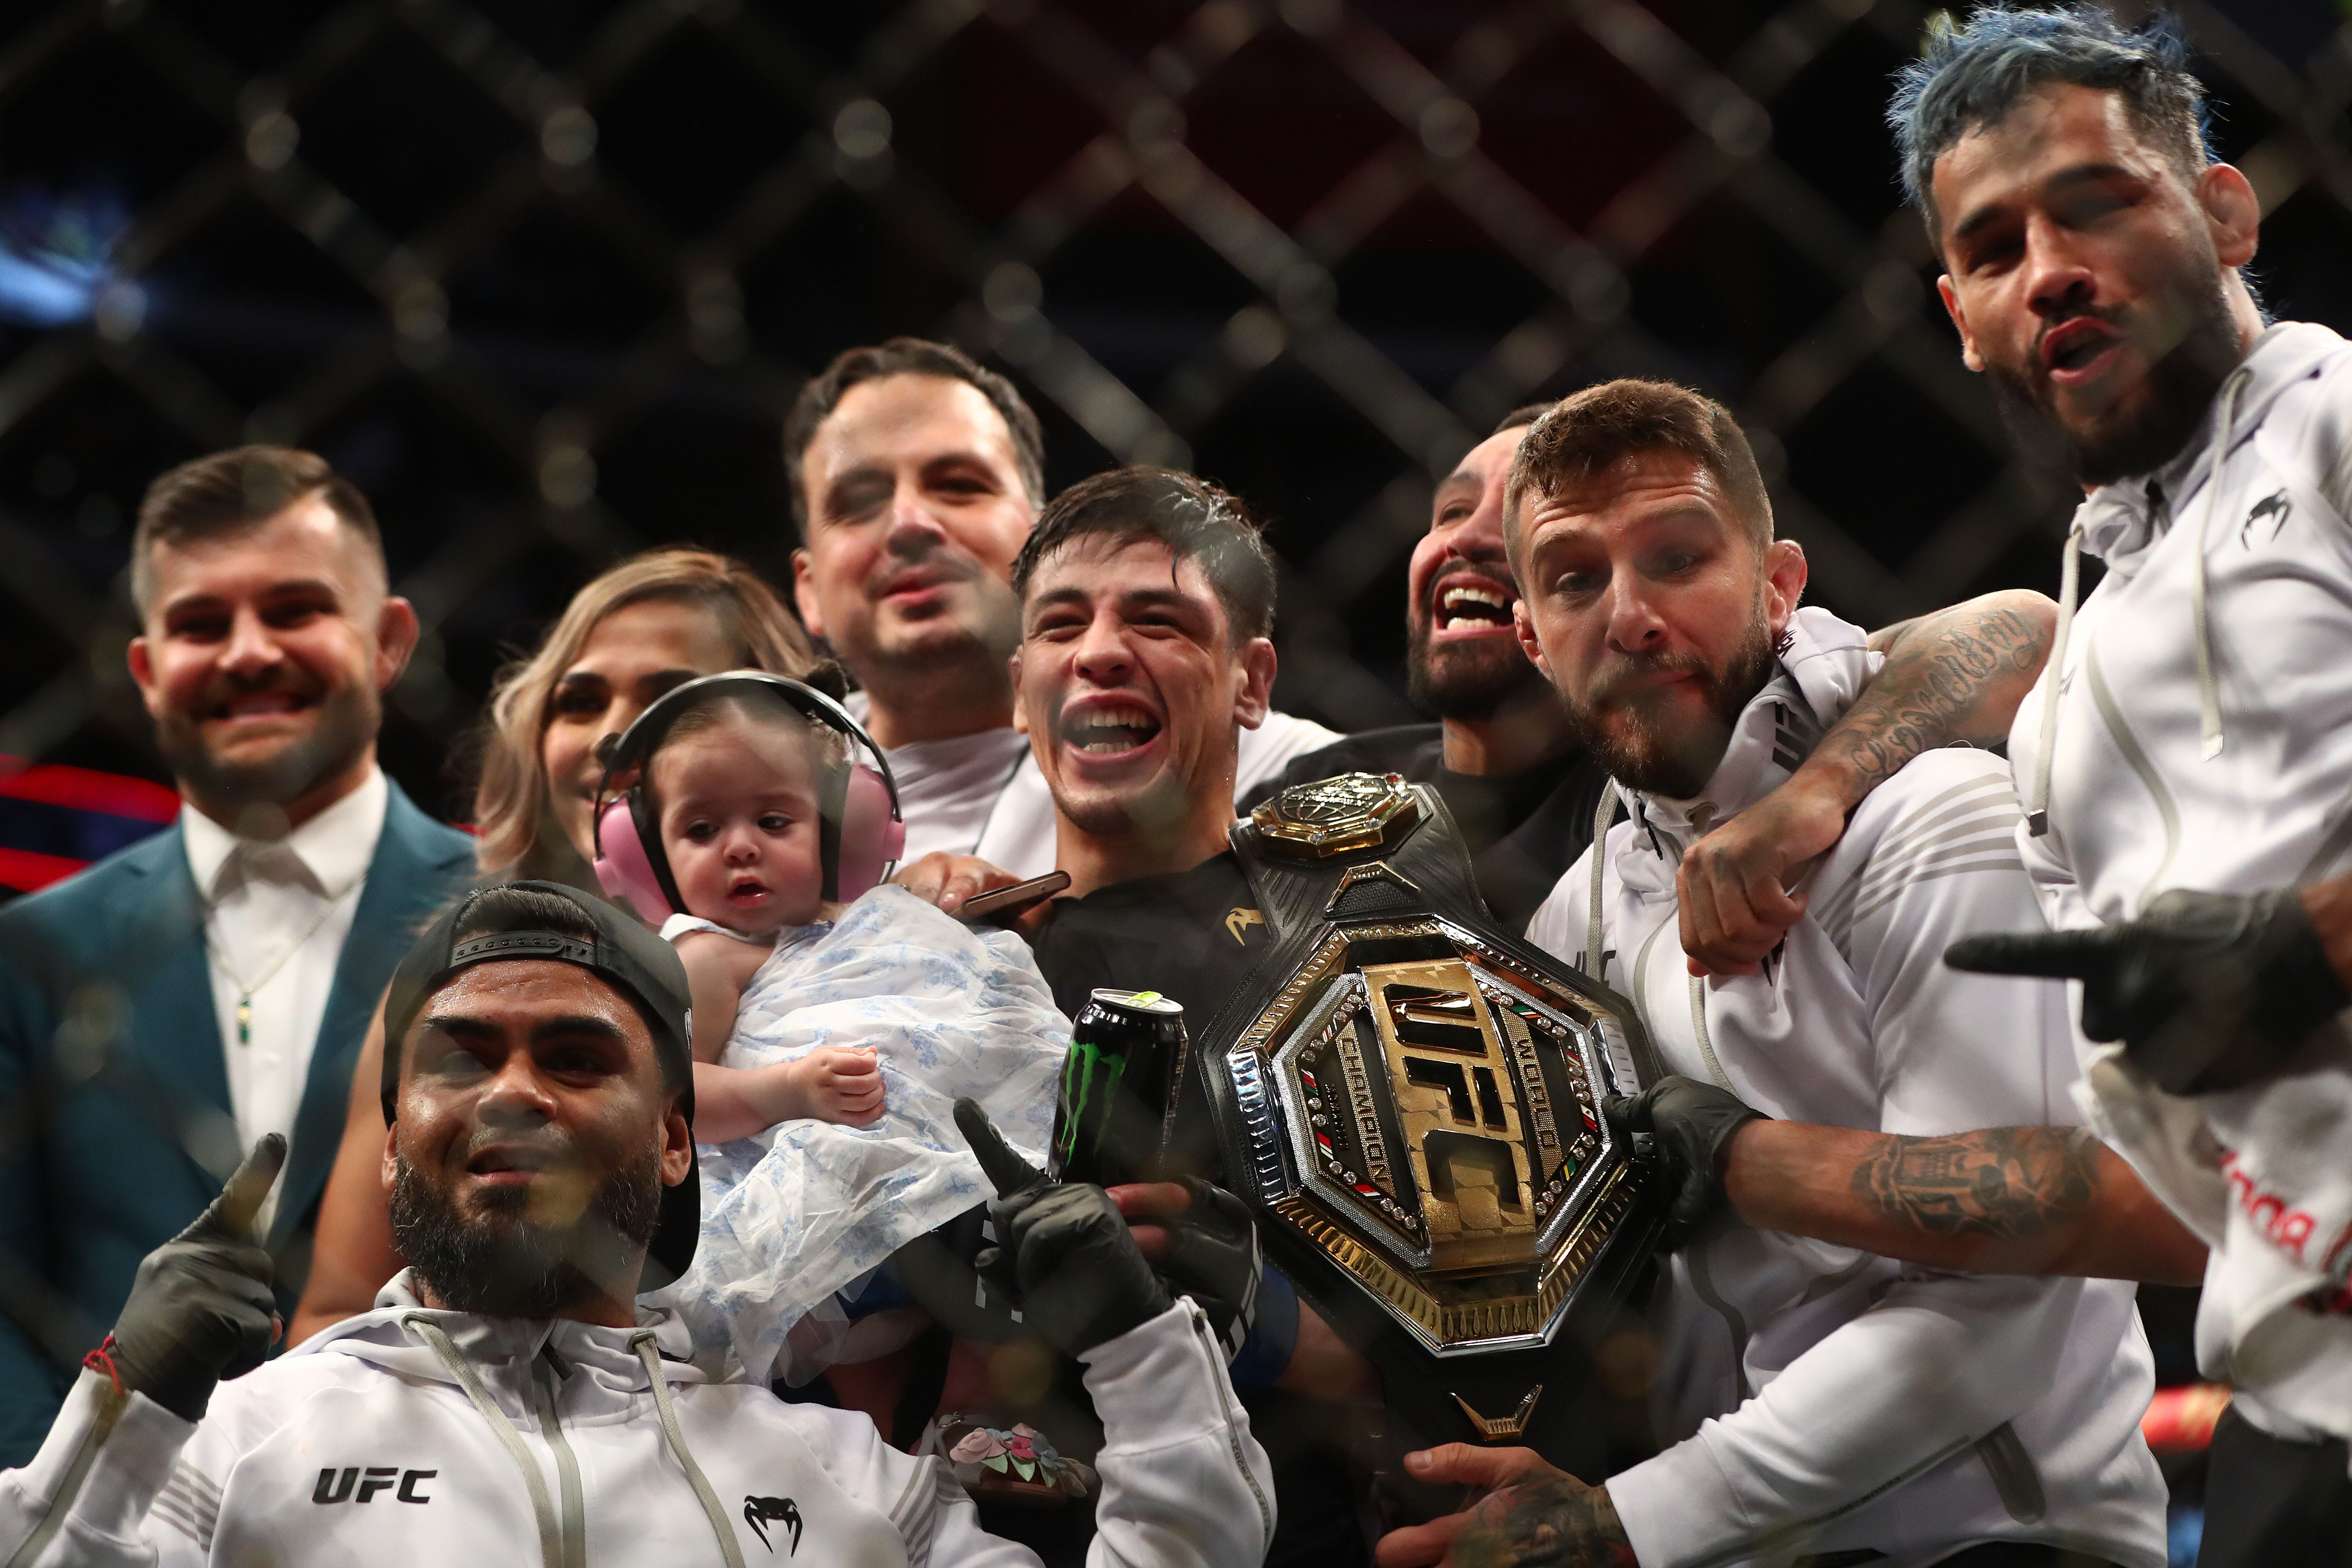 Moreno makes history in becoming first Mexico-born UFC champion